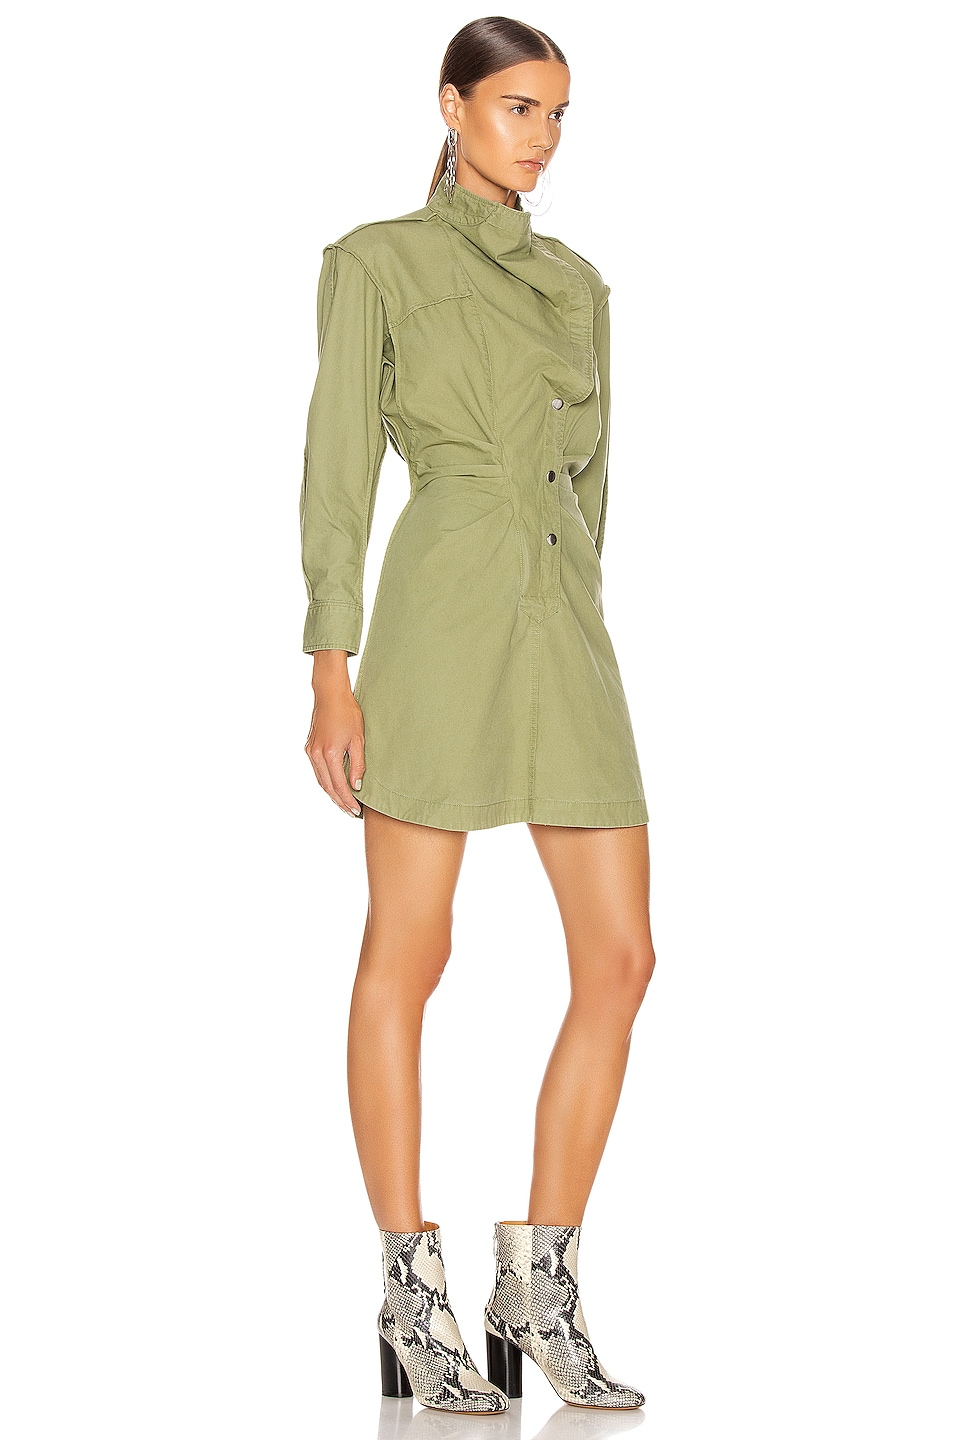 Image 3 of Isabel Marant Etoile Linore Dress in Khaki